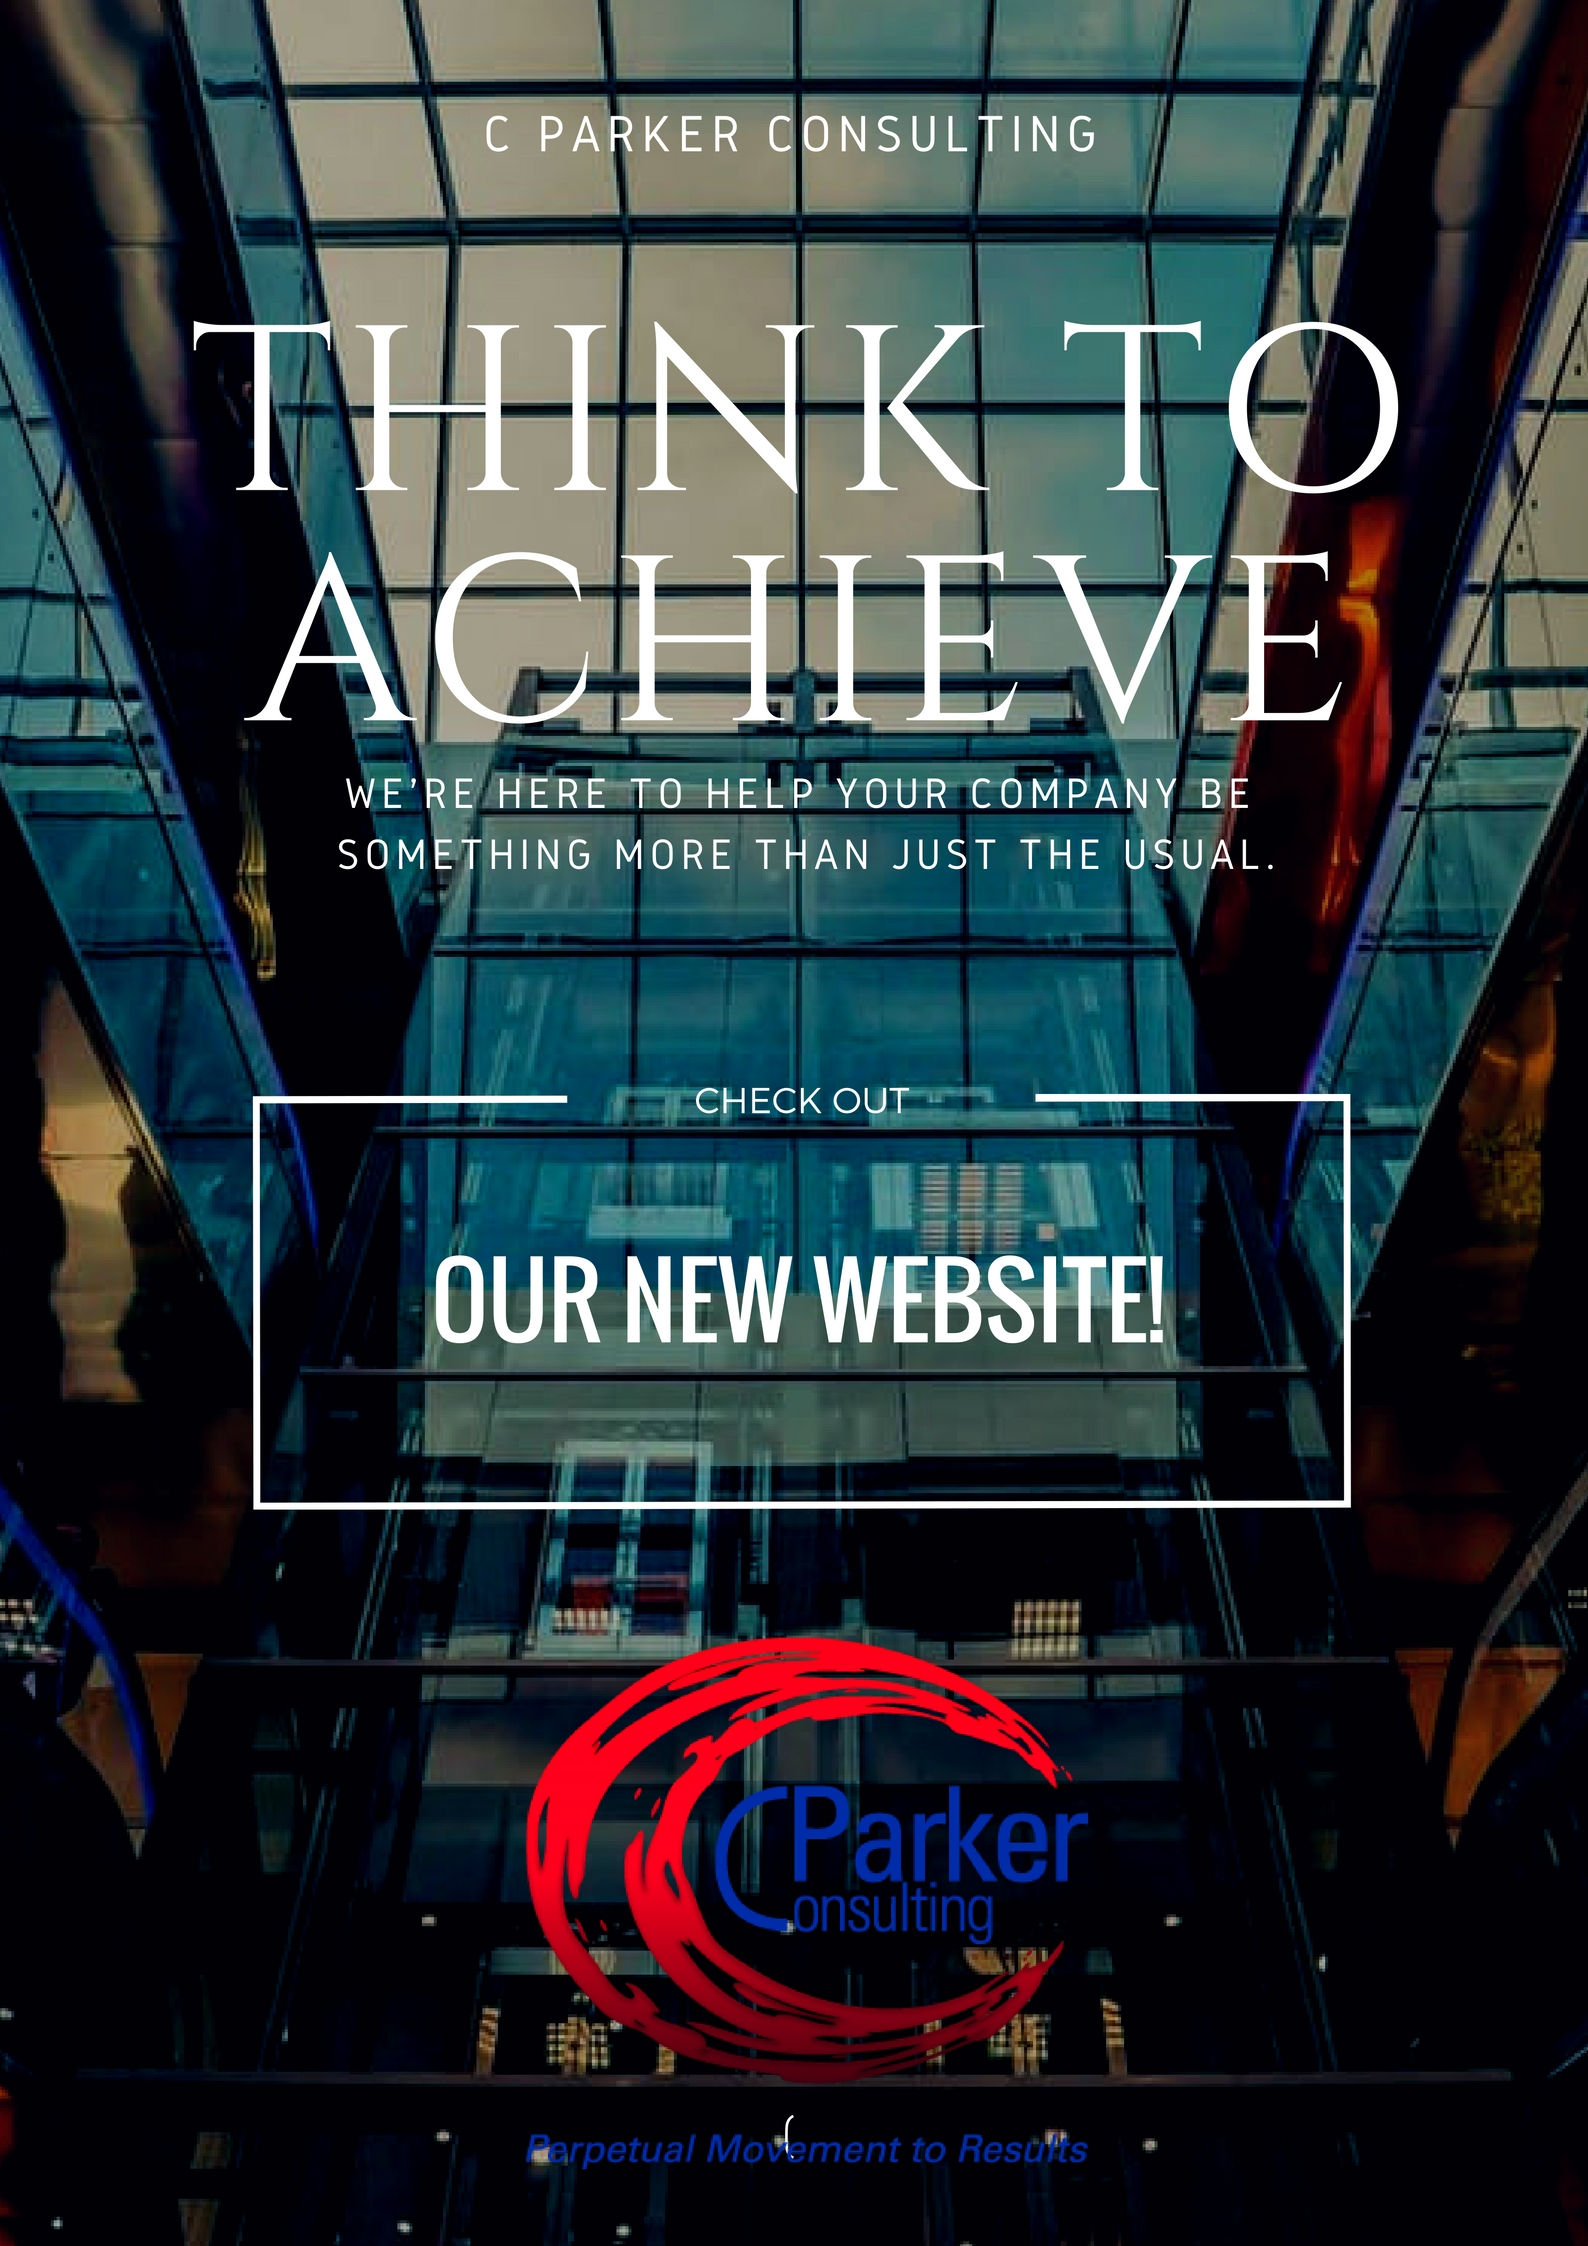 c parker consulting.jpg